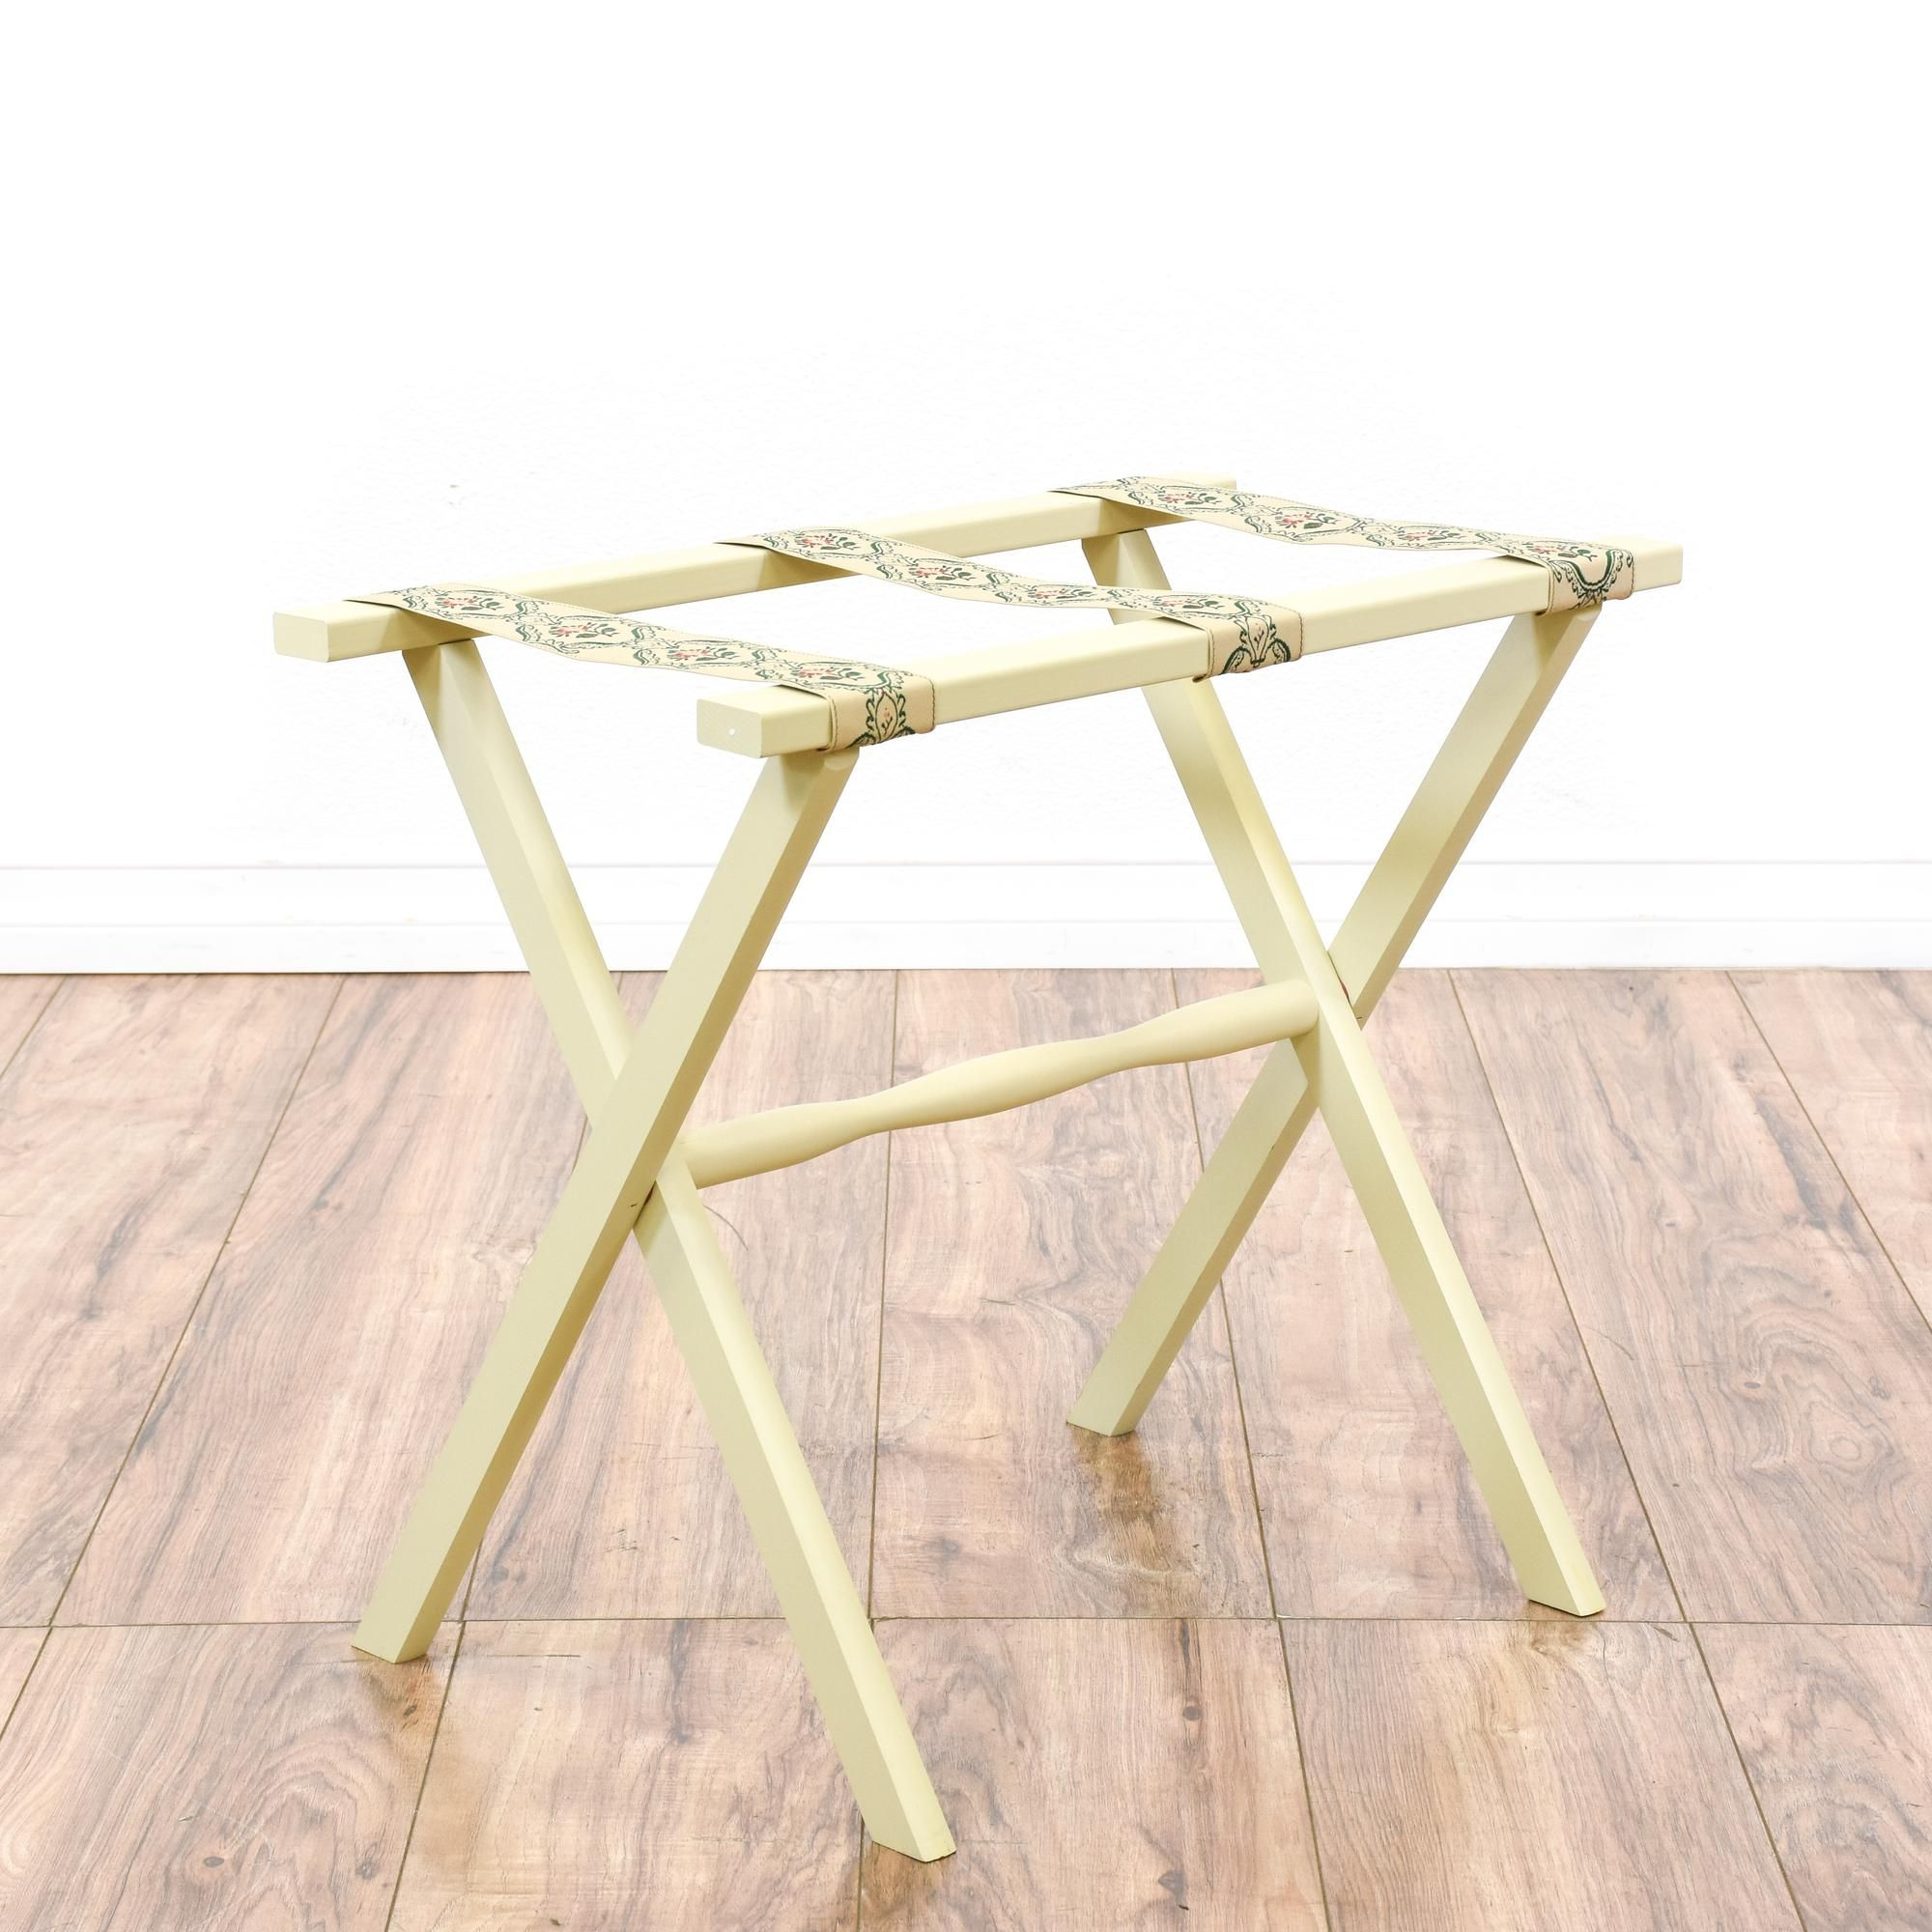 This cottage chic luggage stand is featured in a solid wood with a fresh off  white paint finish. This side table has a folding base e1939976e